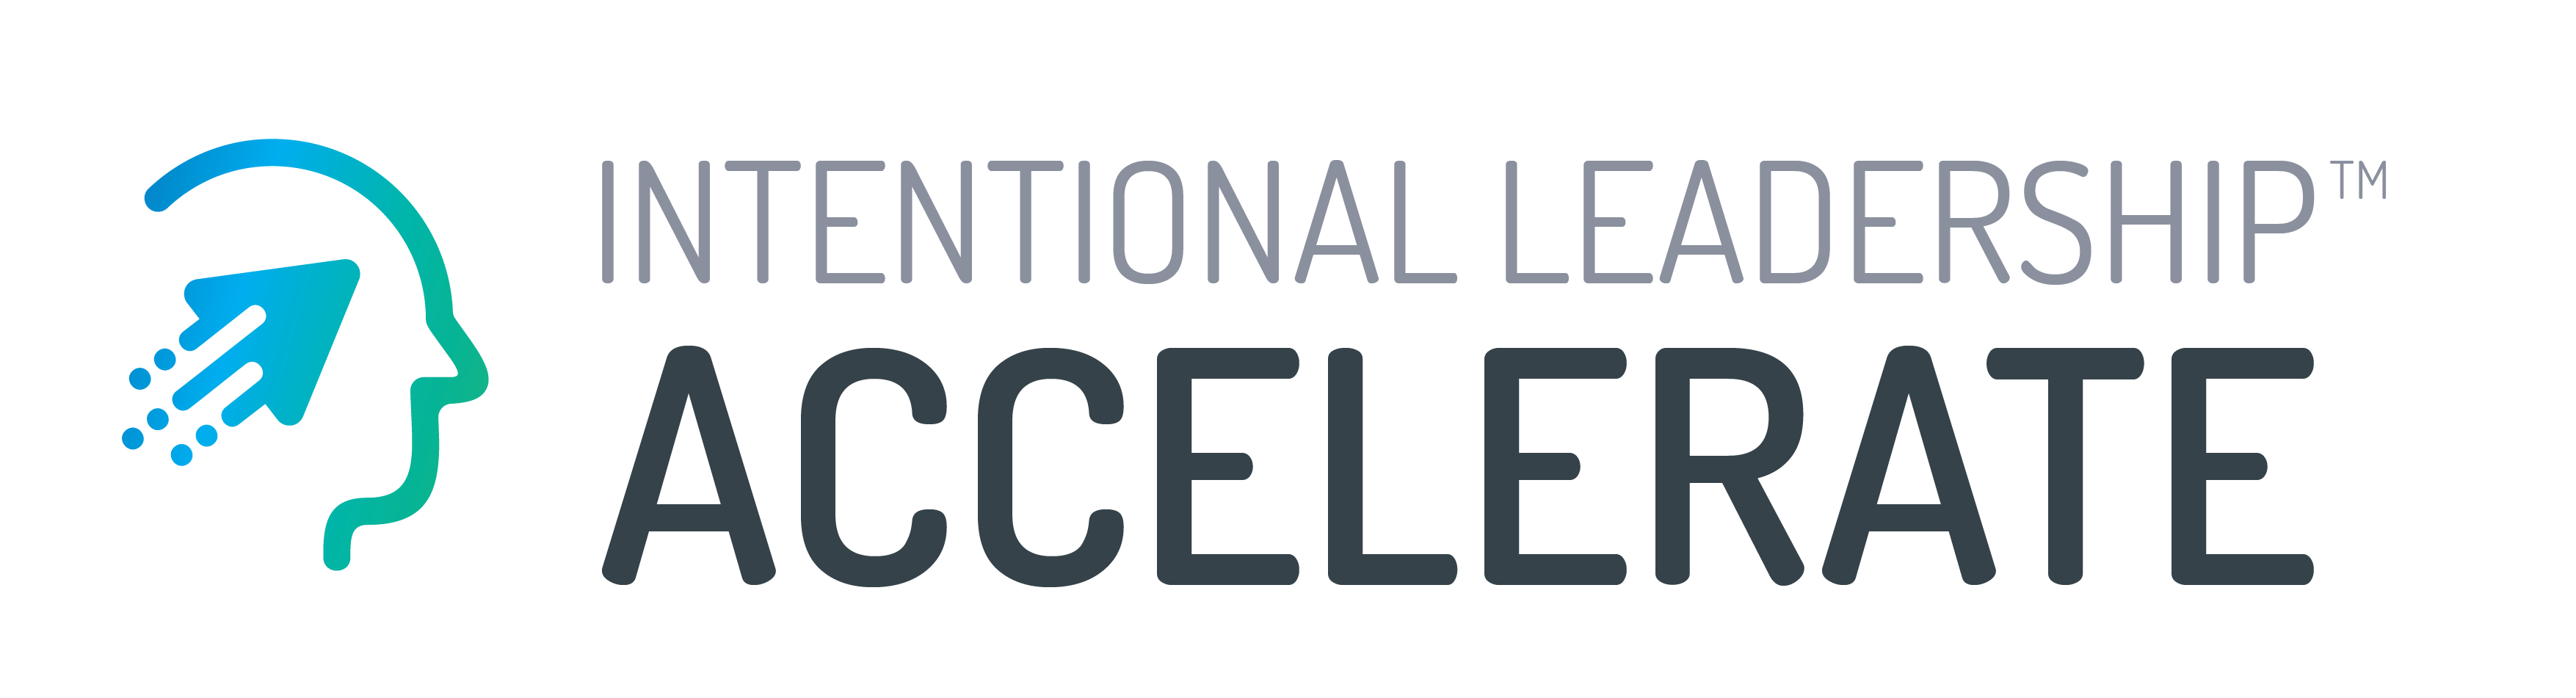 international leadership accelerate